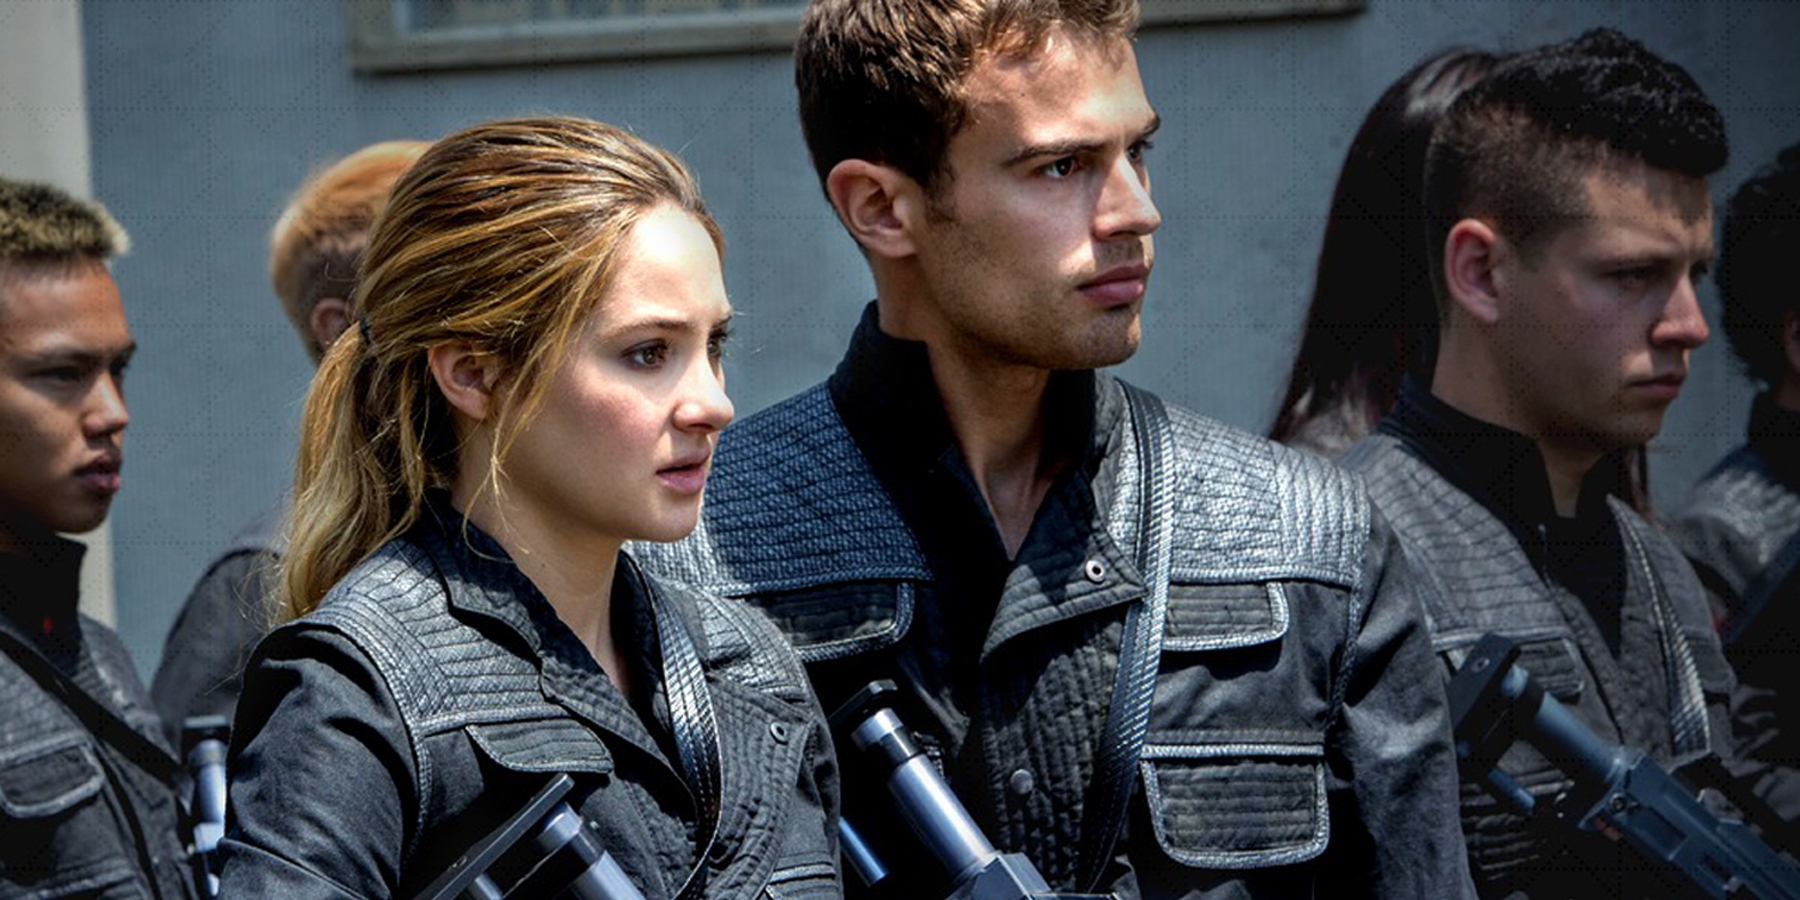 Are tobias and tris dating in real life 1